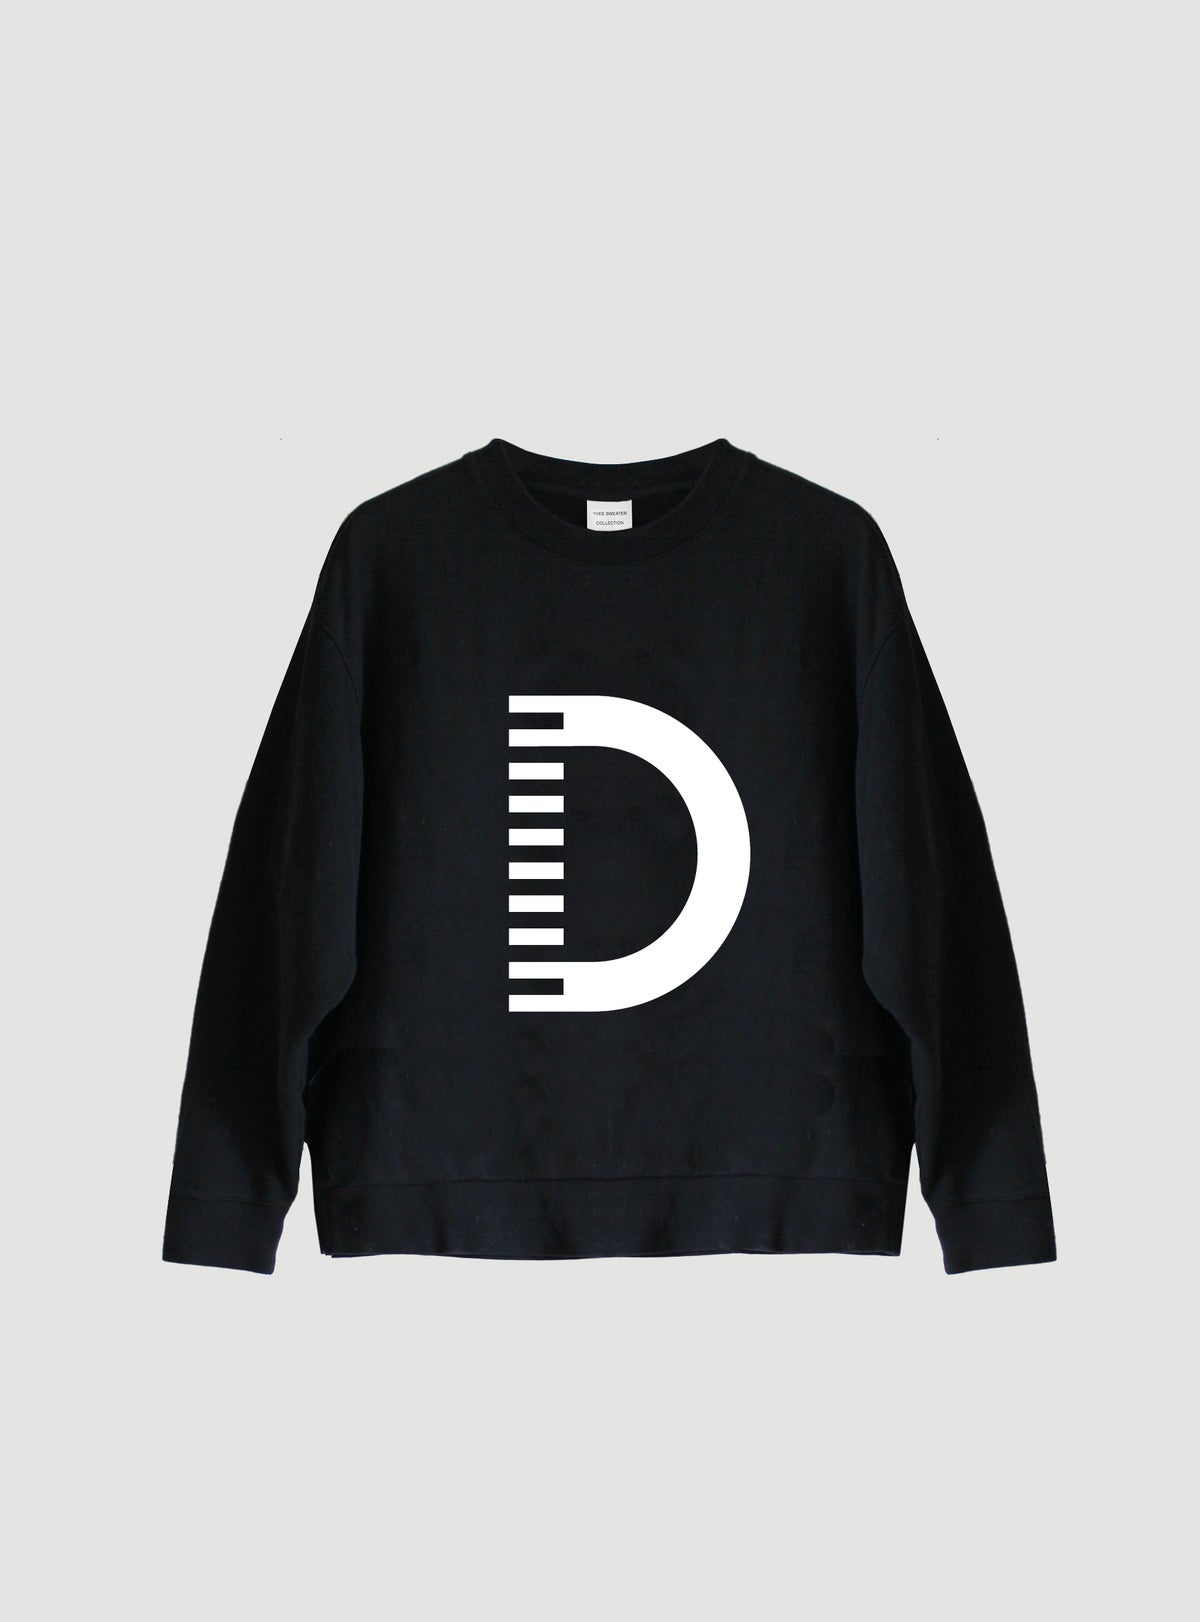 Image of D Sweater